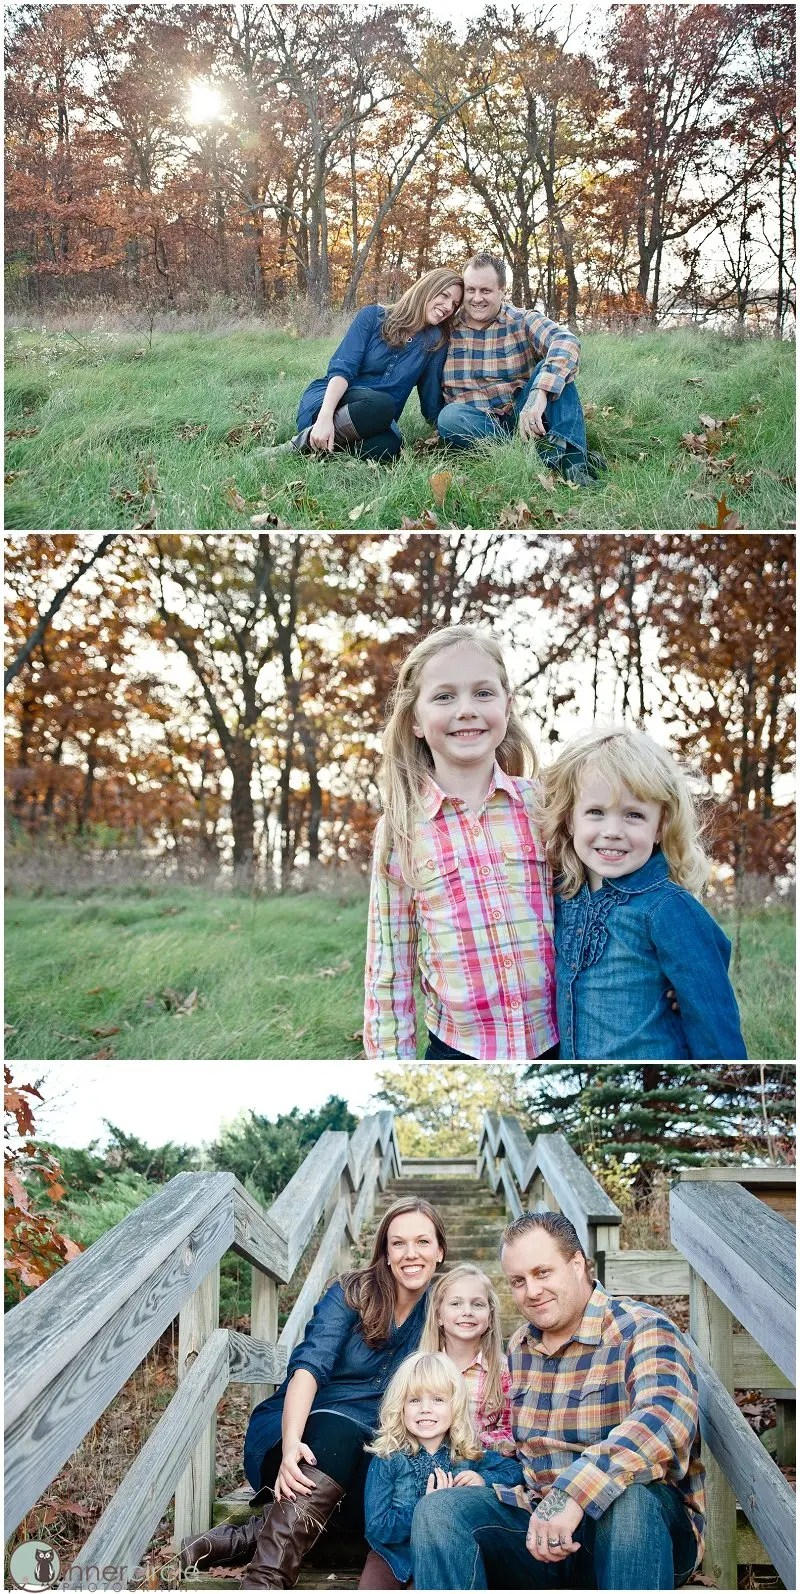 DSC_08571 Family Fun! A Beloved Family Session - Michigan Photographer